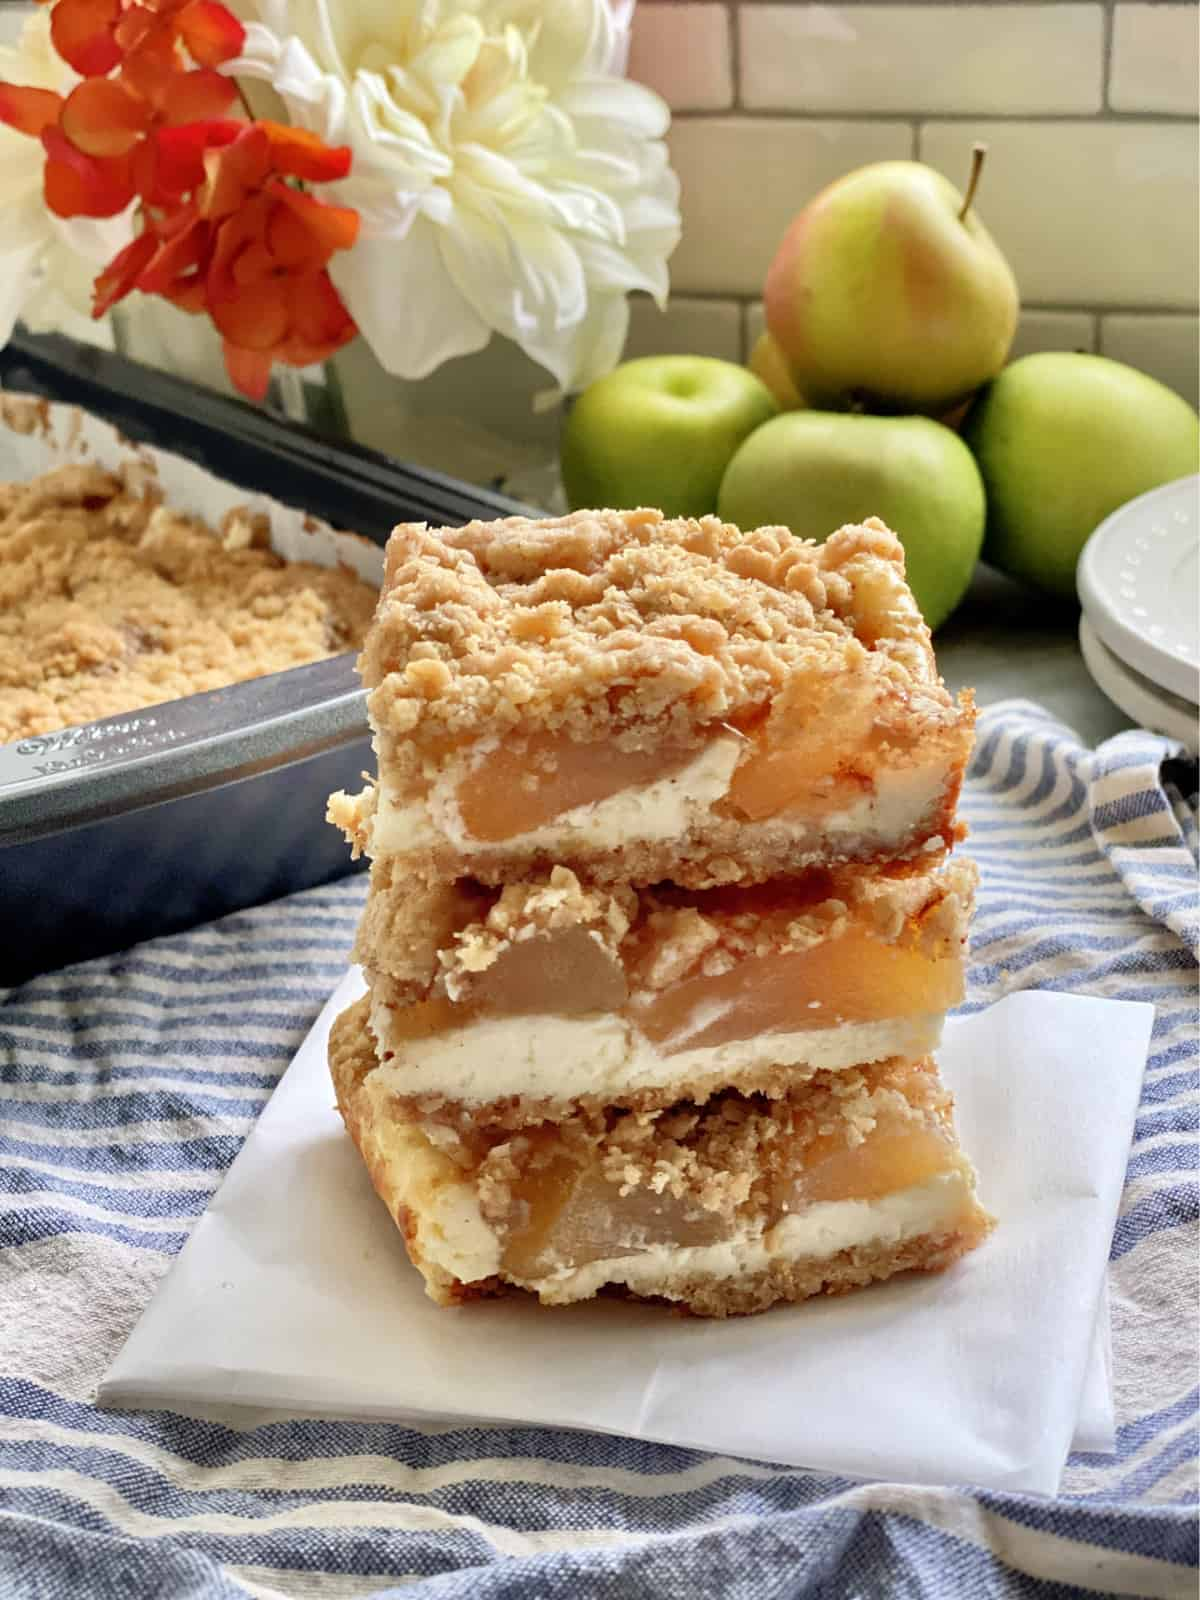 Three cheesecake bars filled with apple sitting on a piece of parchment paper.